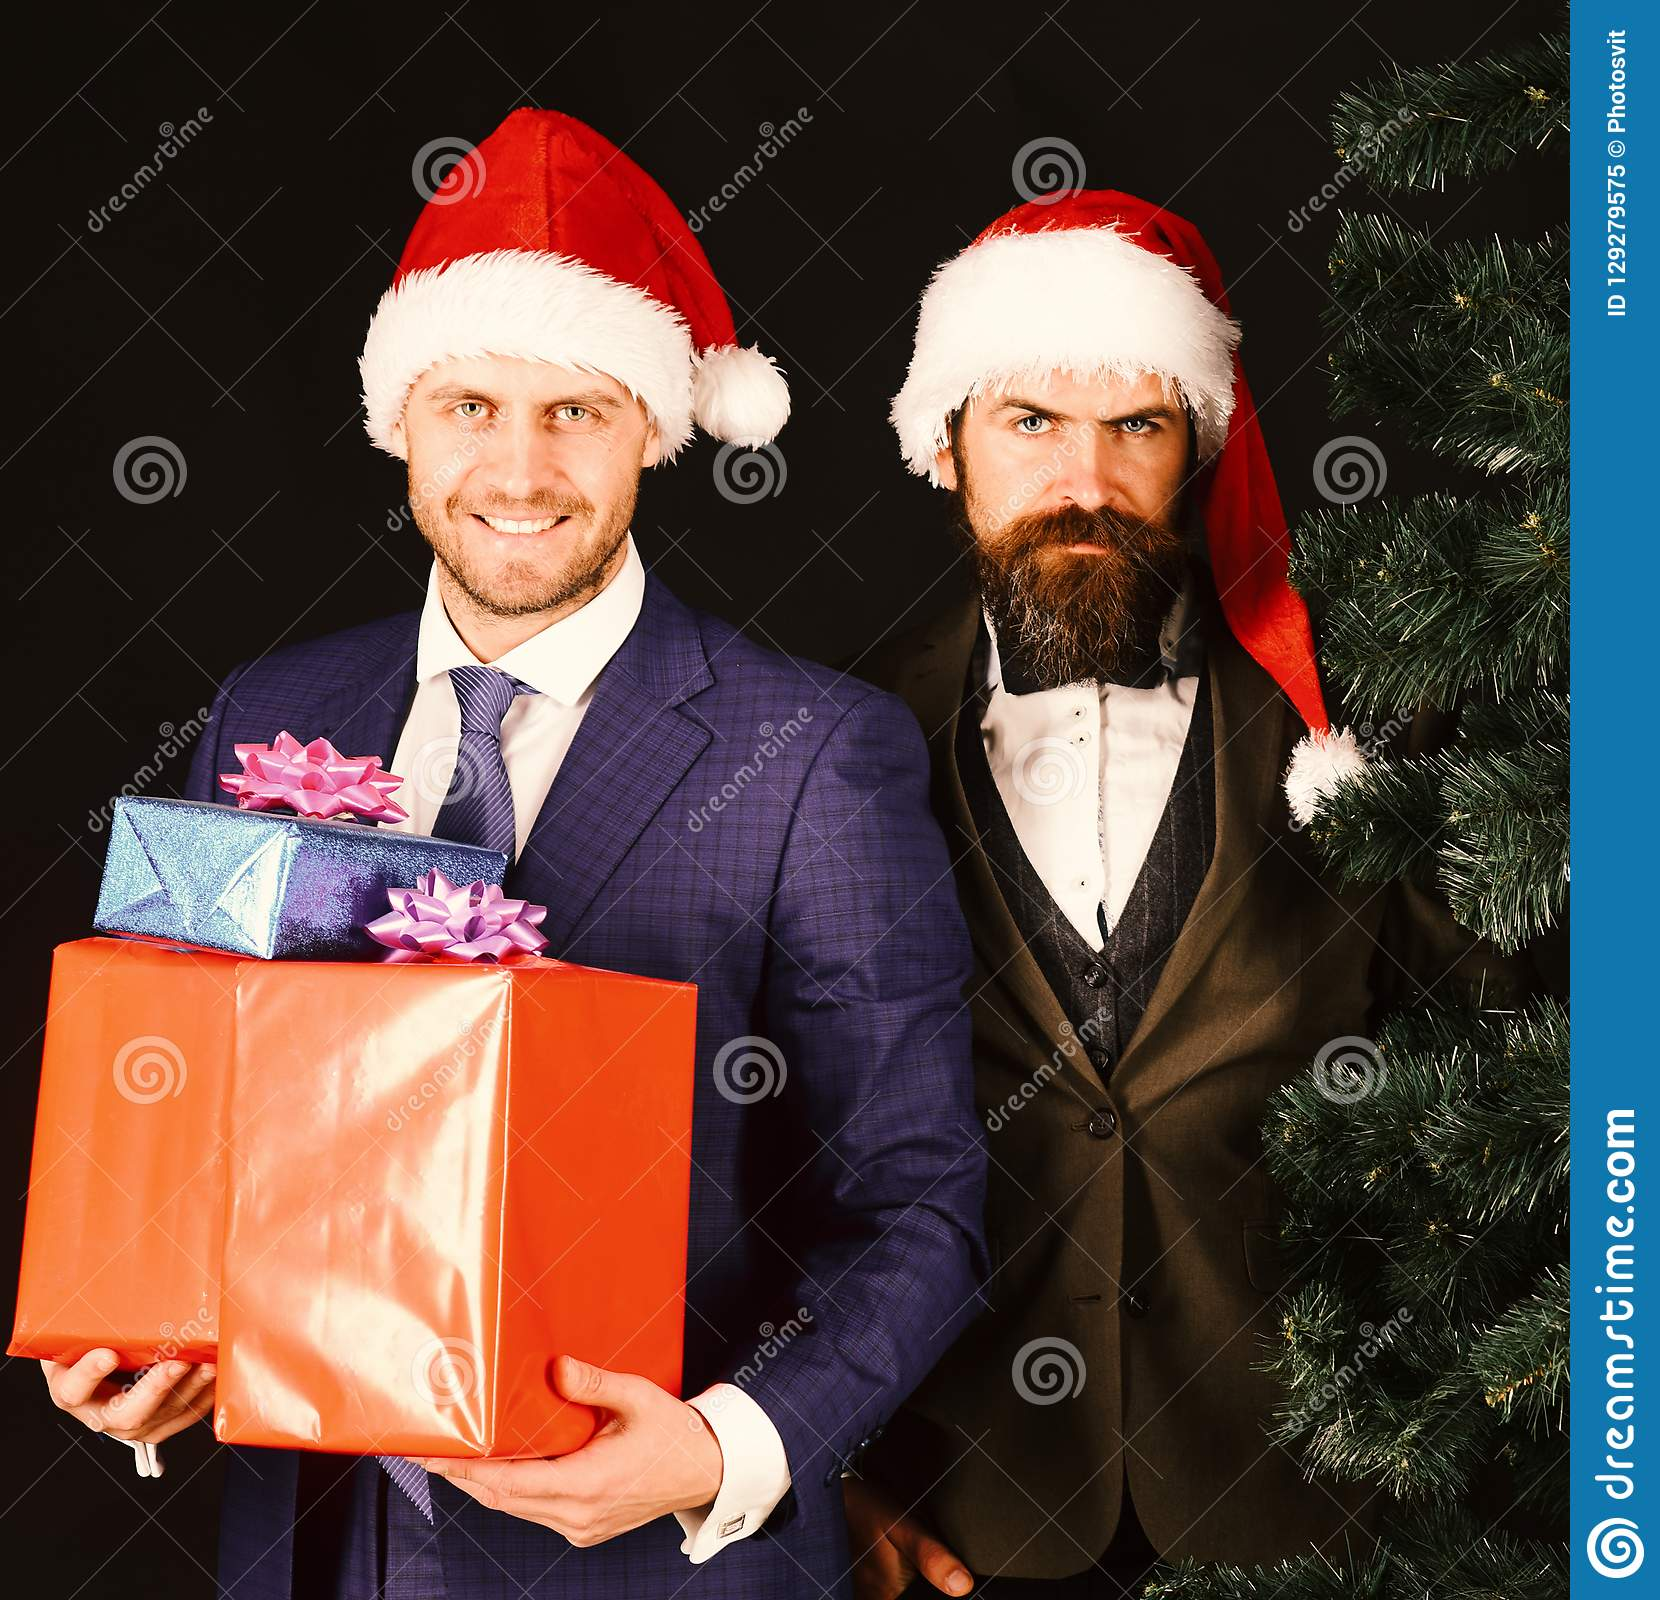 Managers with beards get ready for Christmas.